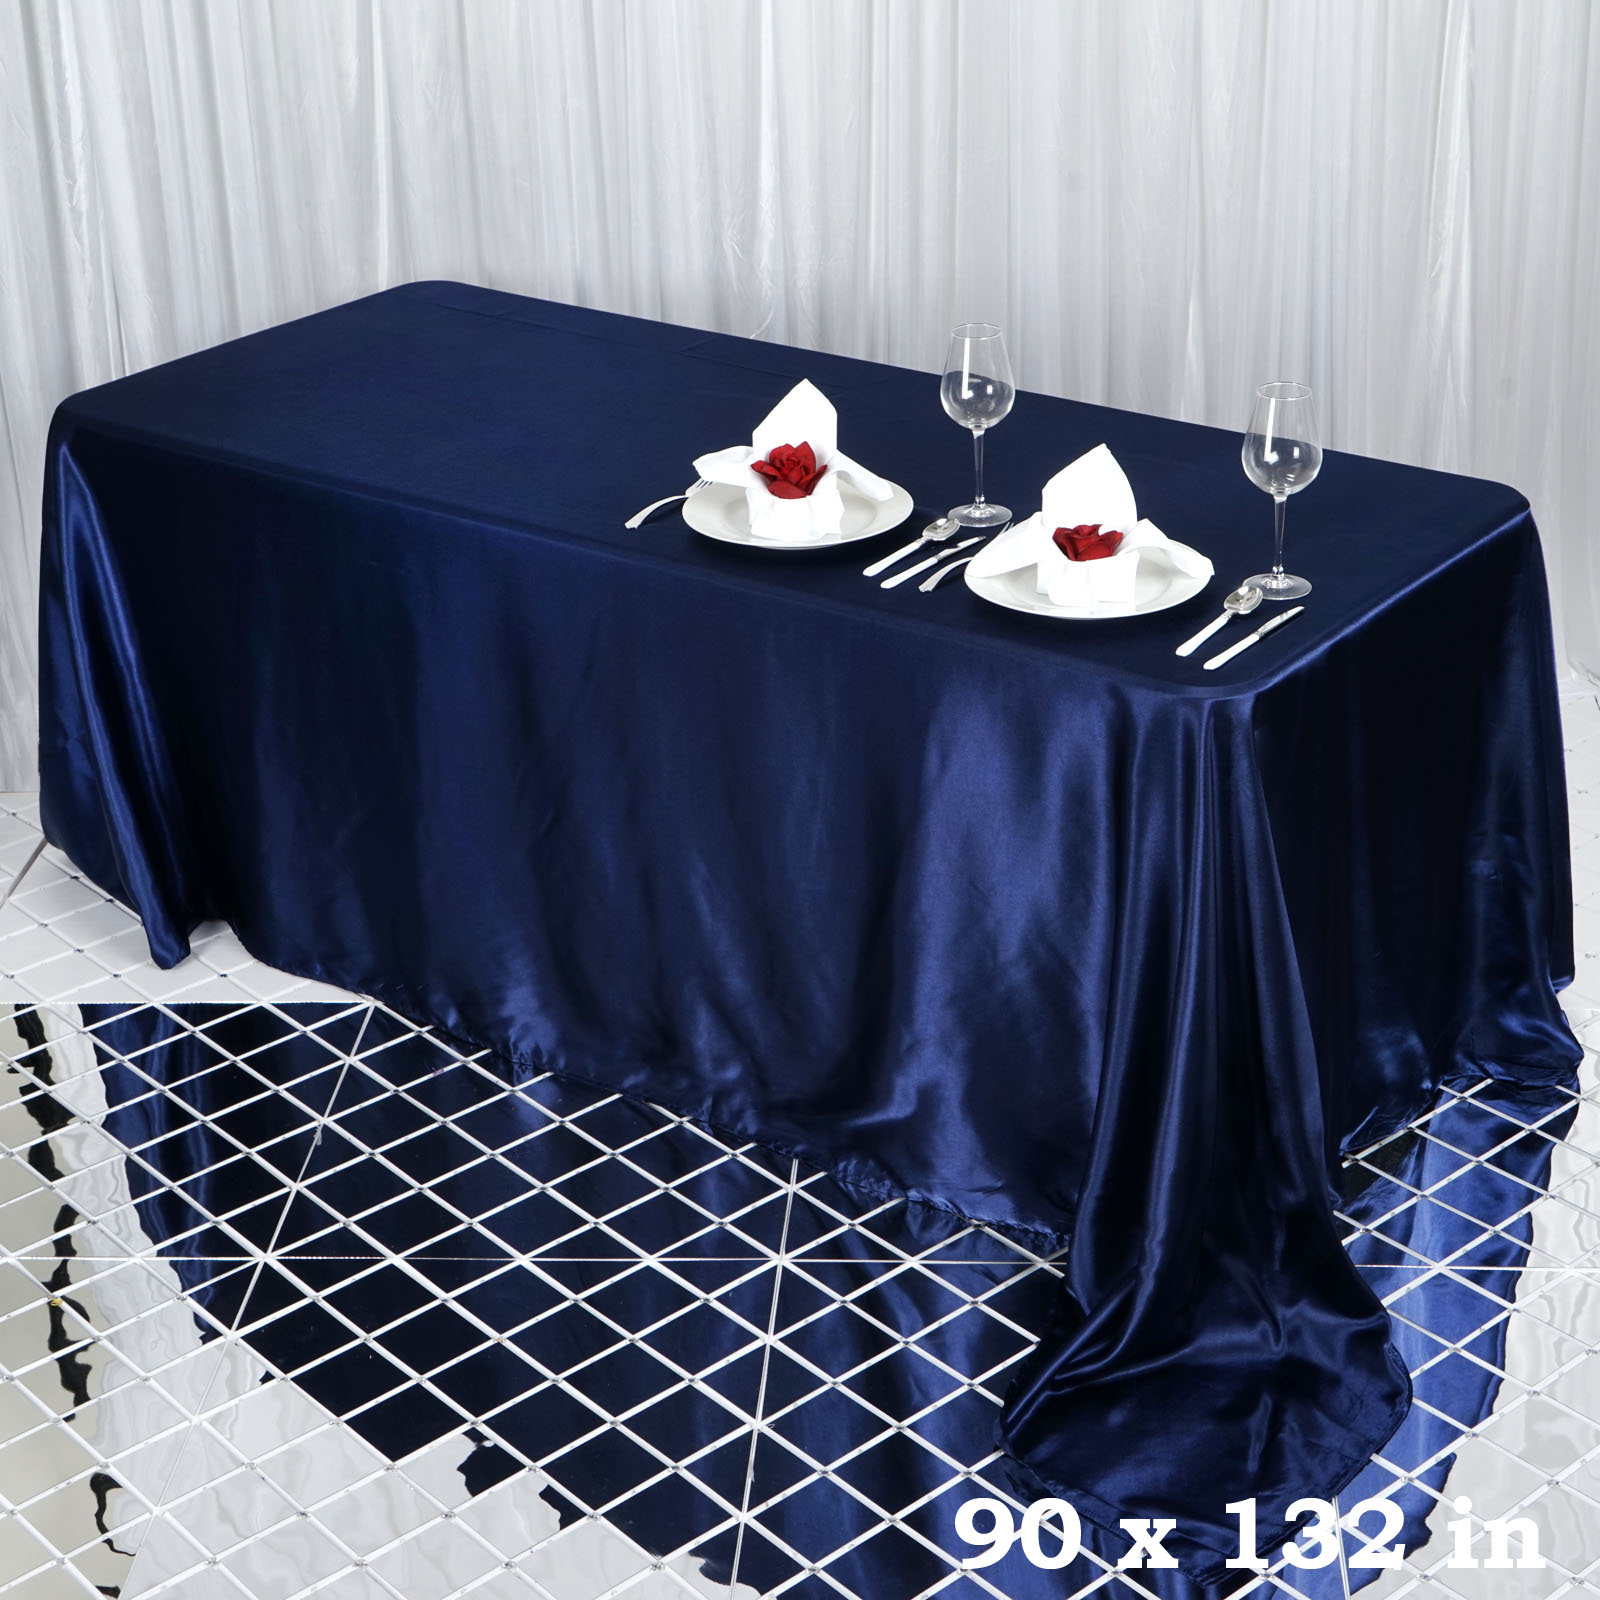 90x132-034-Rectangle-Satin-Tablecloth-For-Wedding-Party-Banquet-Events-Decoration thumbnail 53